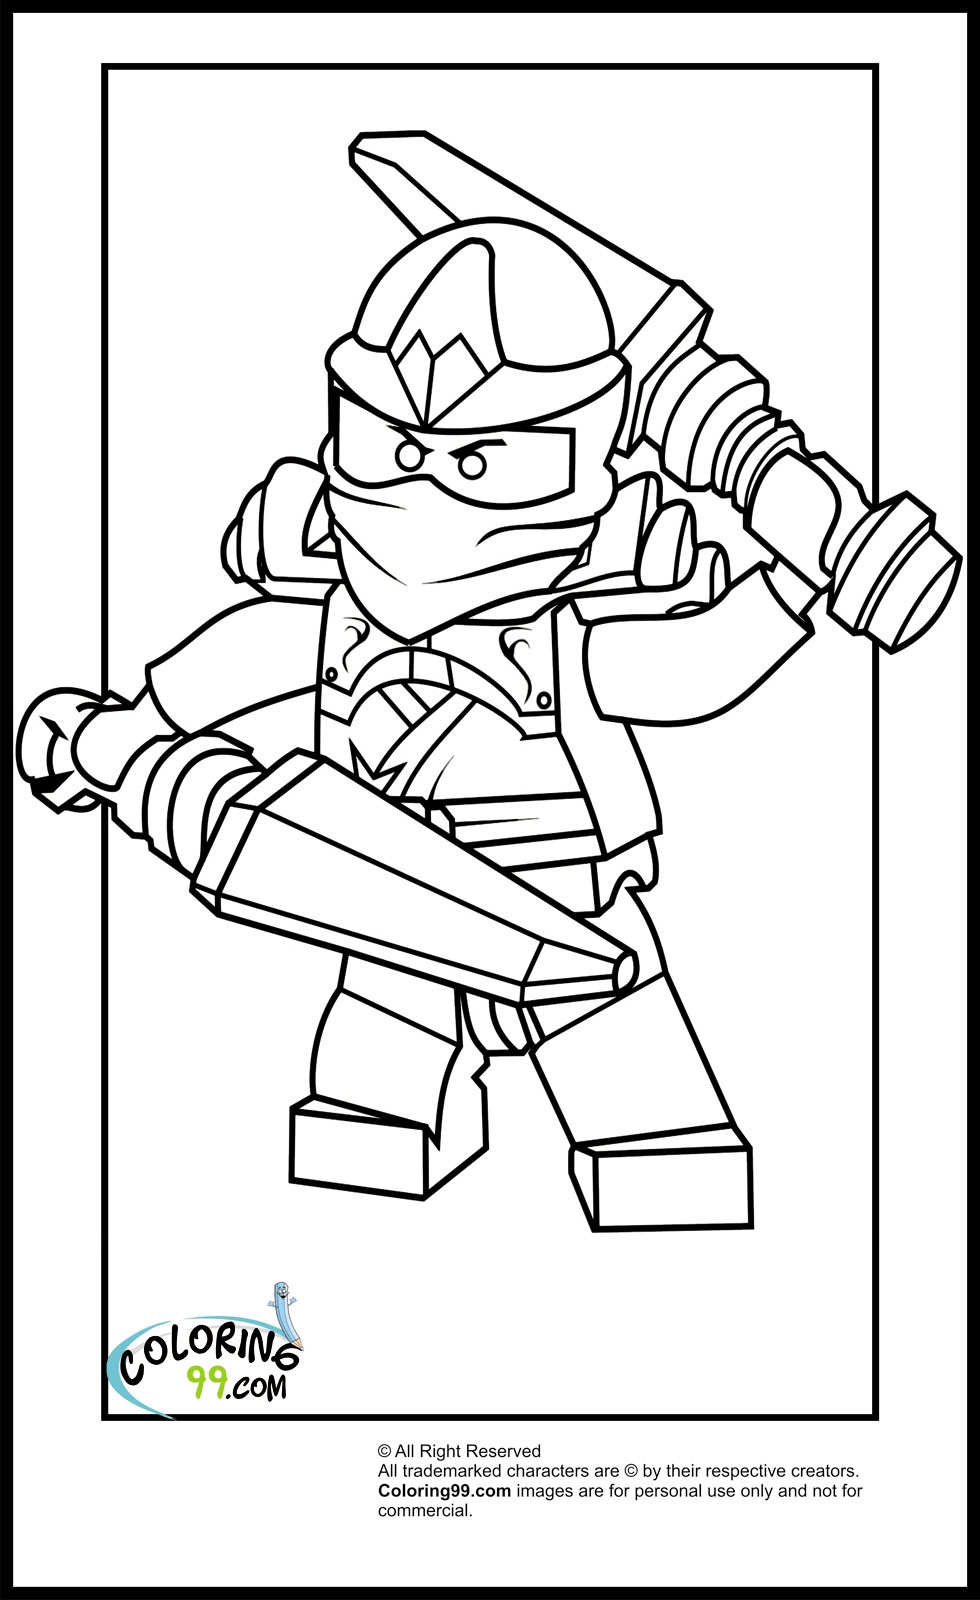 ninjago kai coloring pages - lego ninjago kai coloring pages